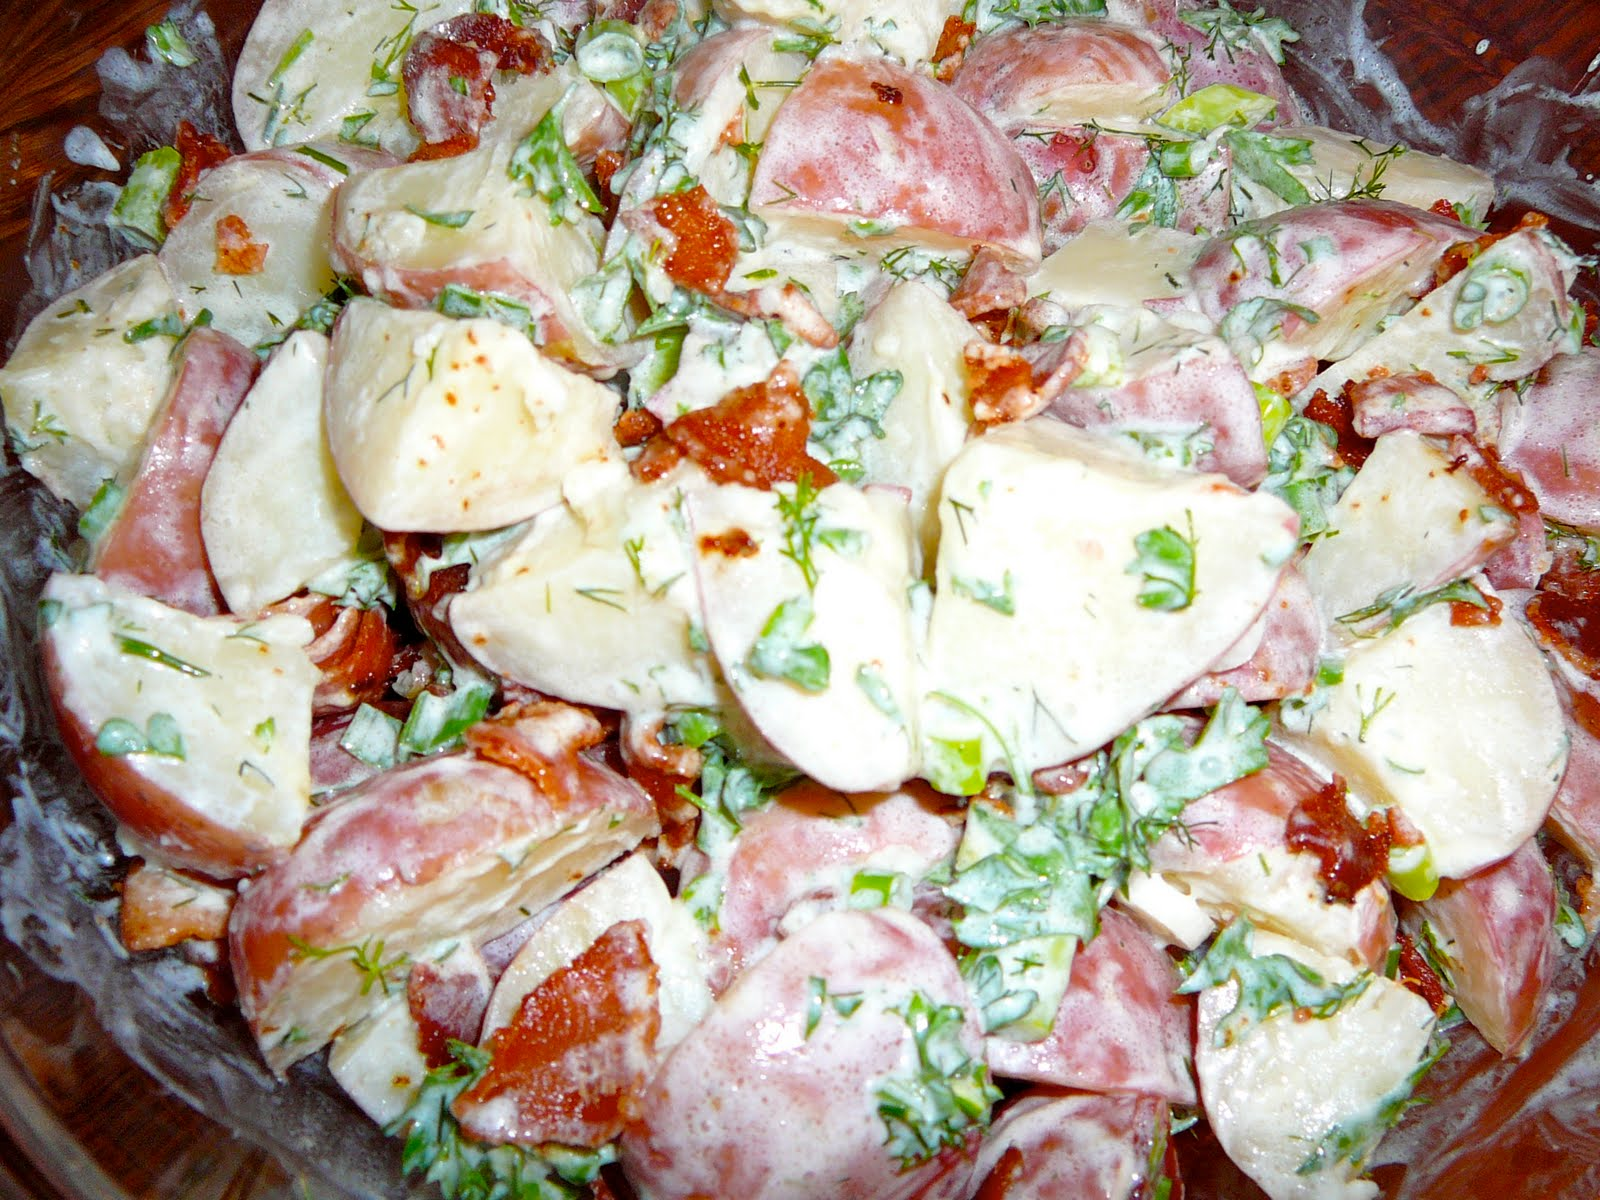 The Hidden Pantry: Red Potato Salad with Crispy Bacon and Dill